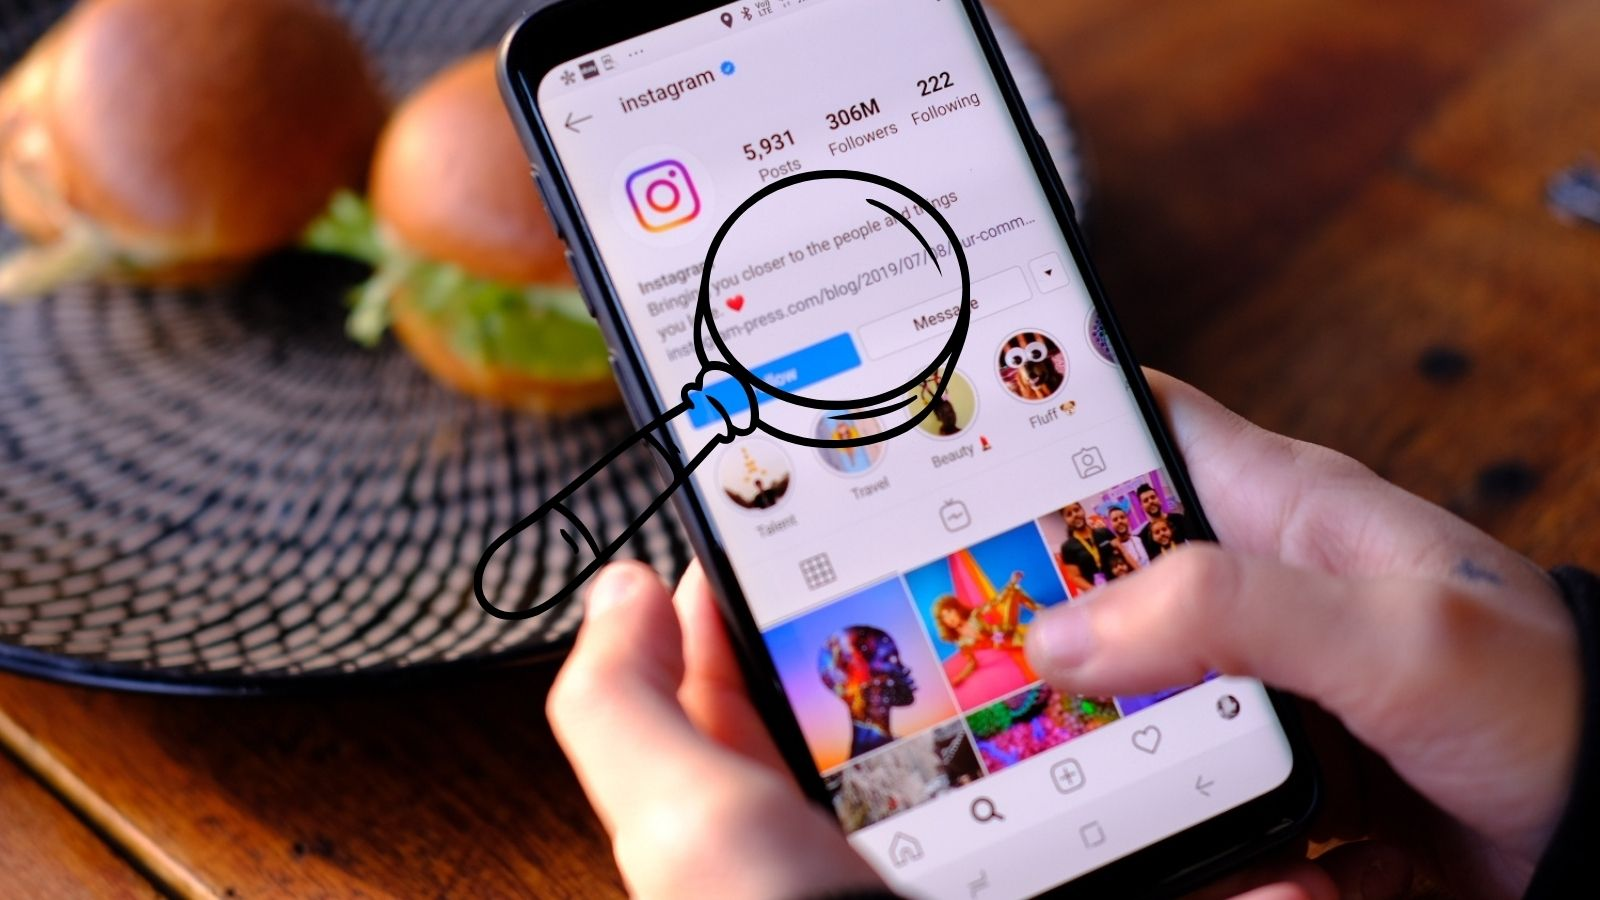 spy private instagram accounts with these tools